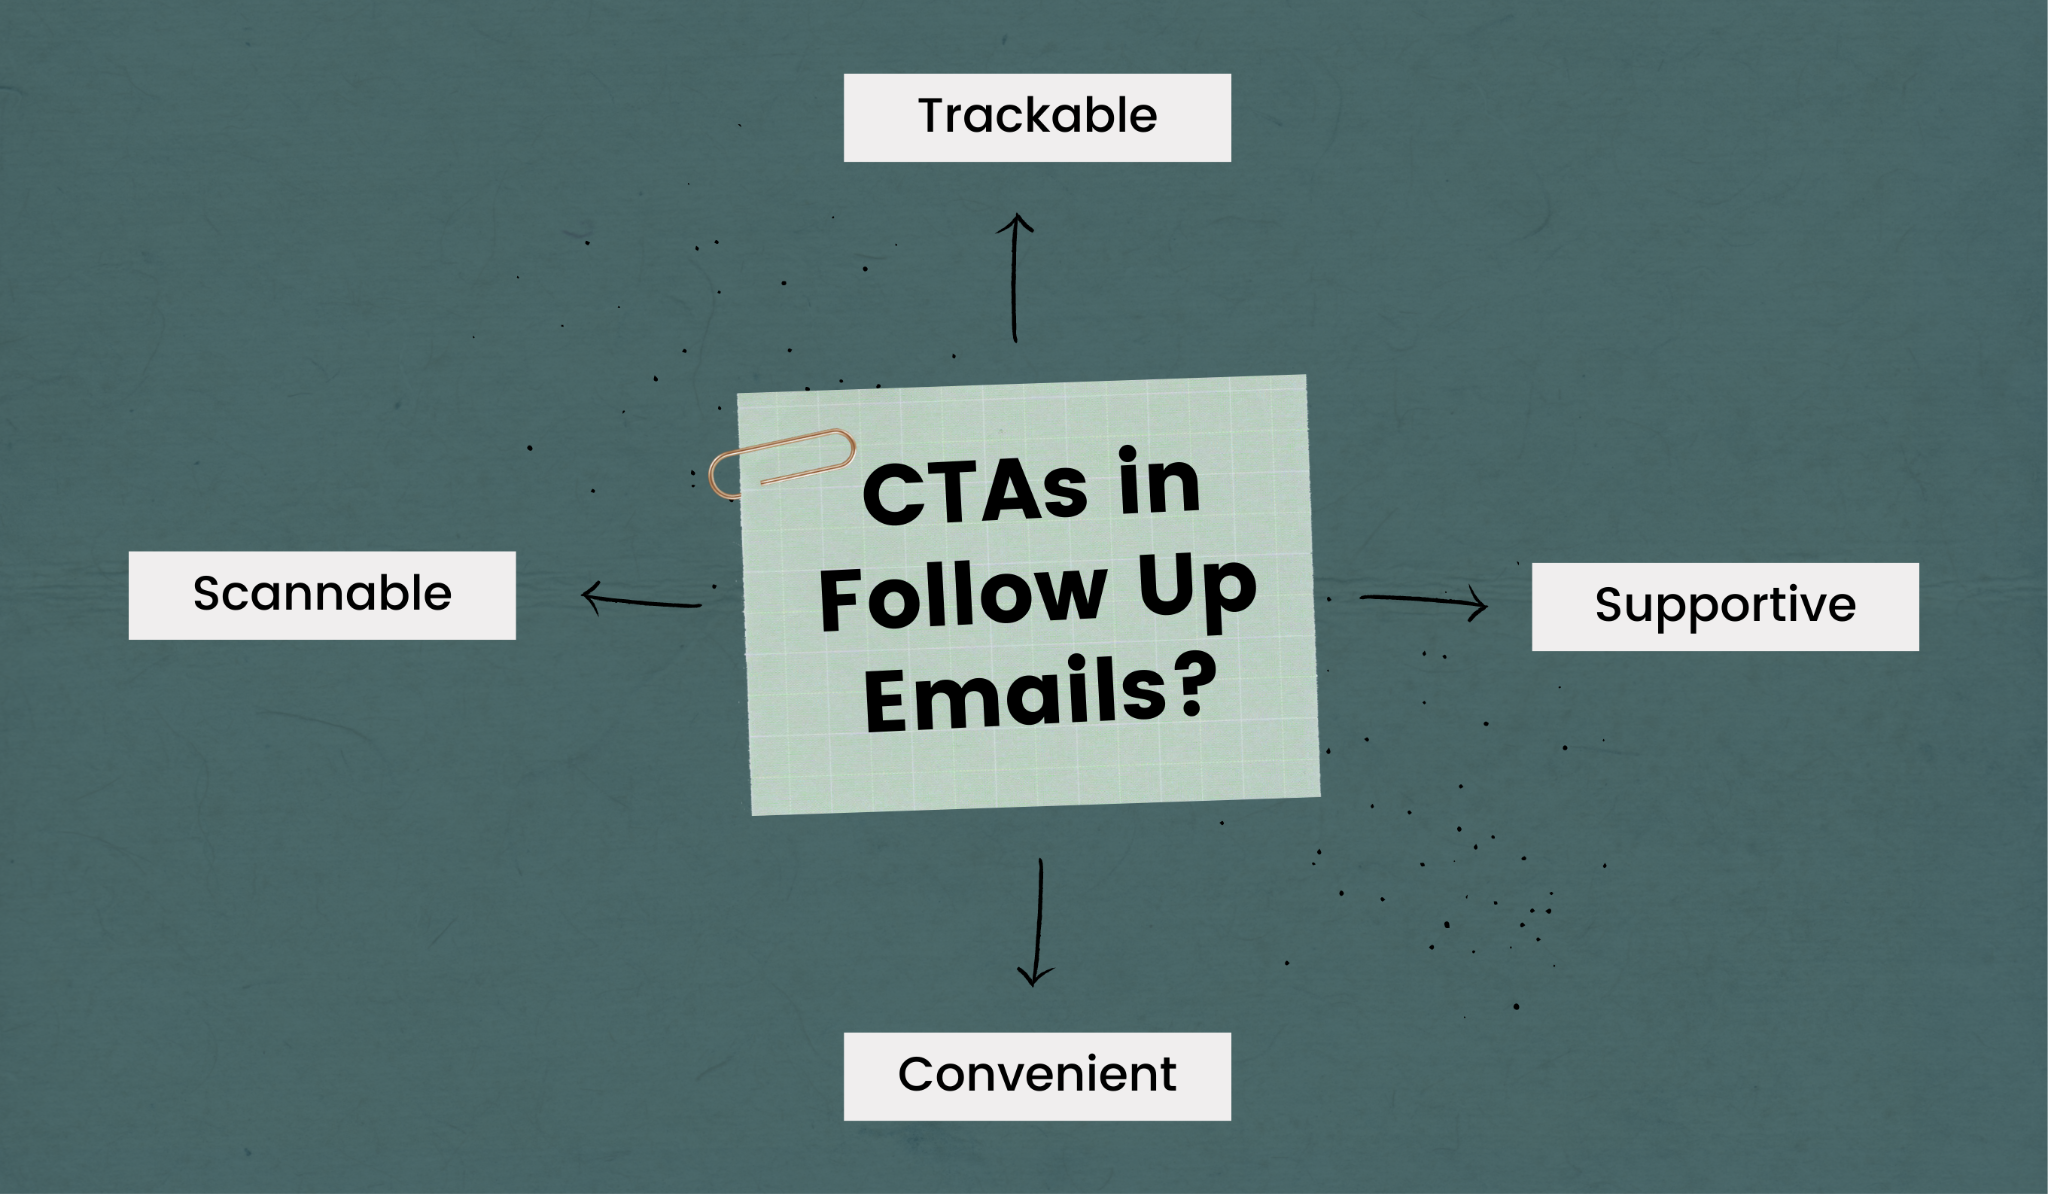 4 reasons to add CTAs in follow up emails